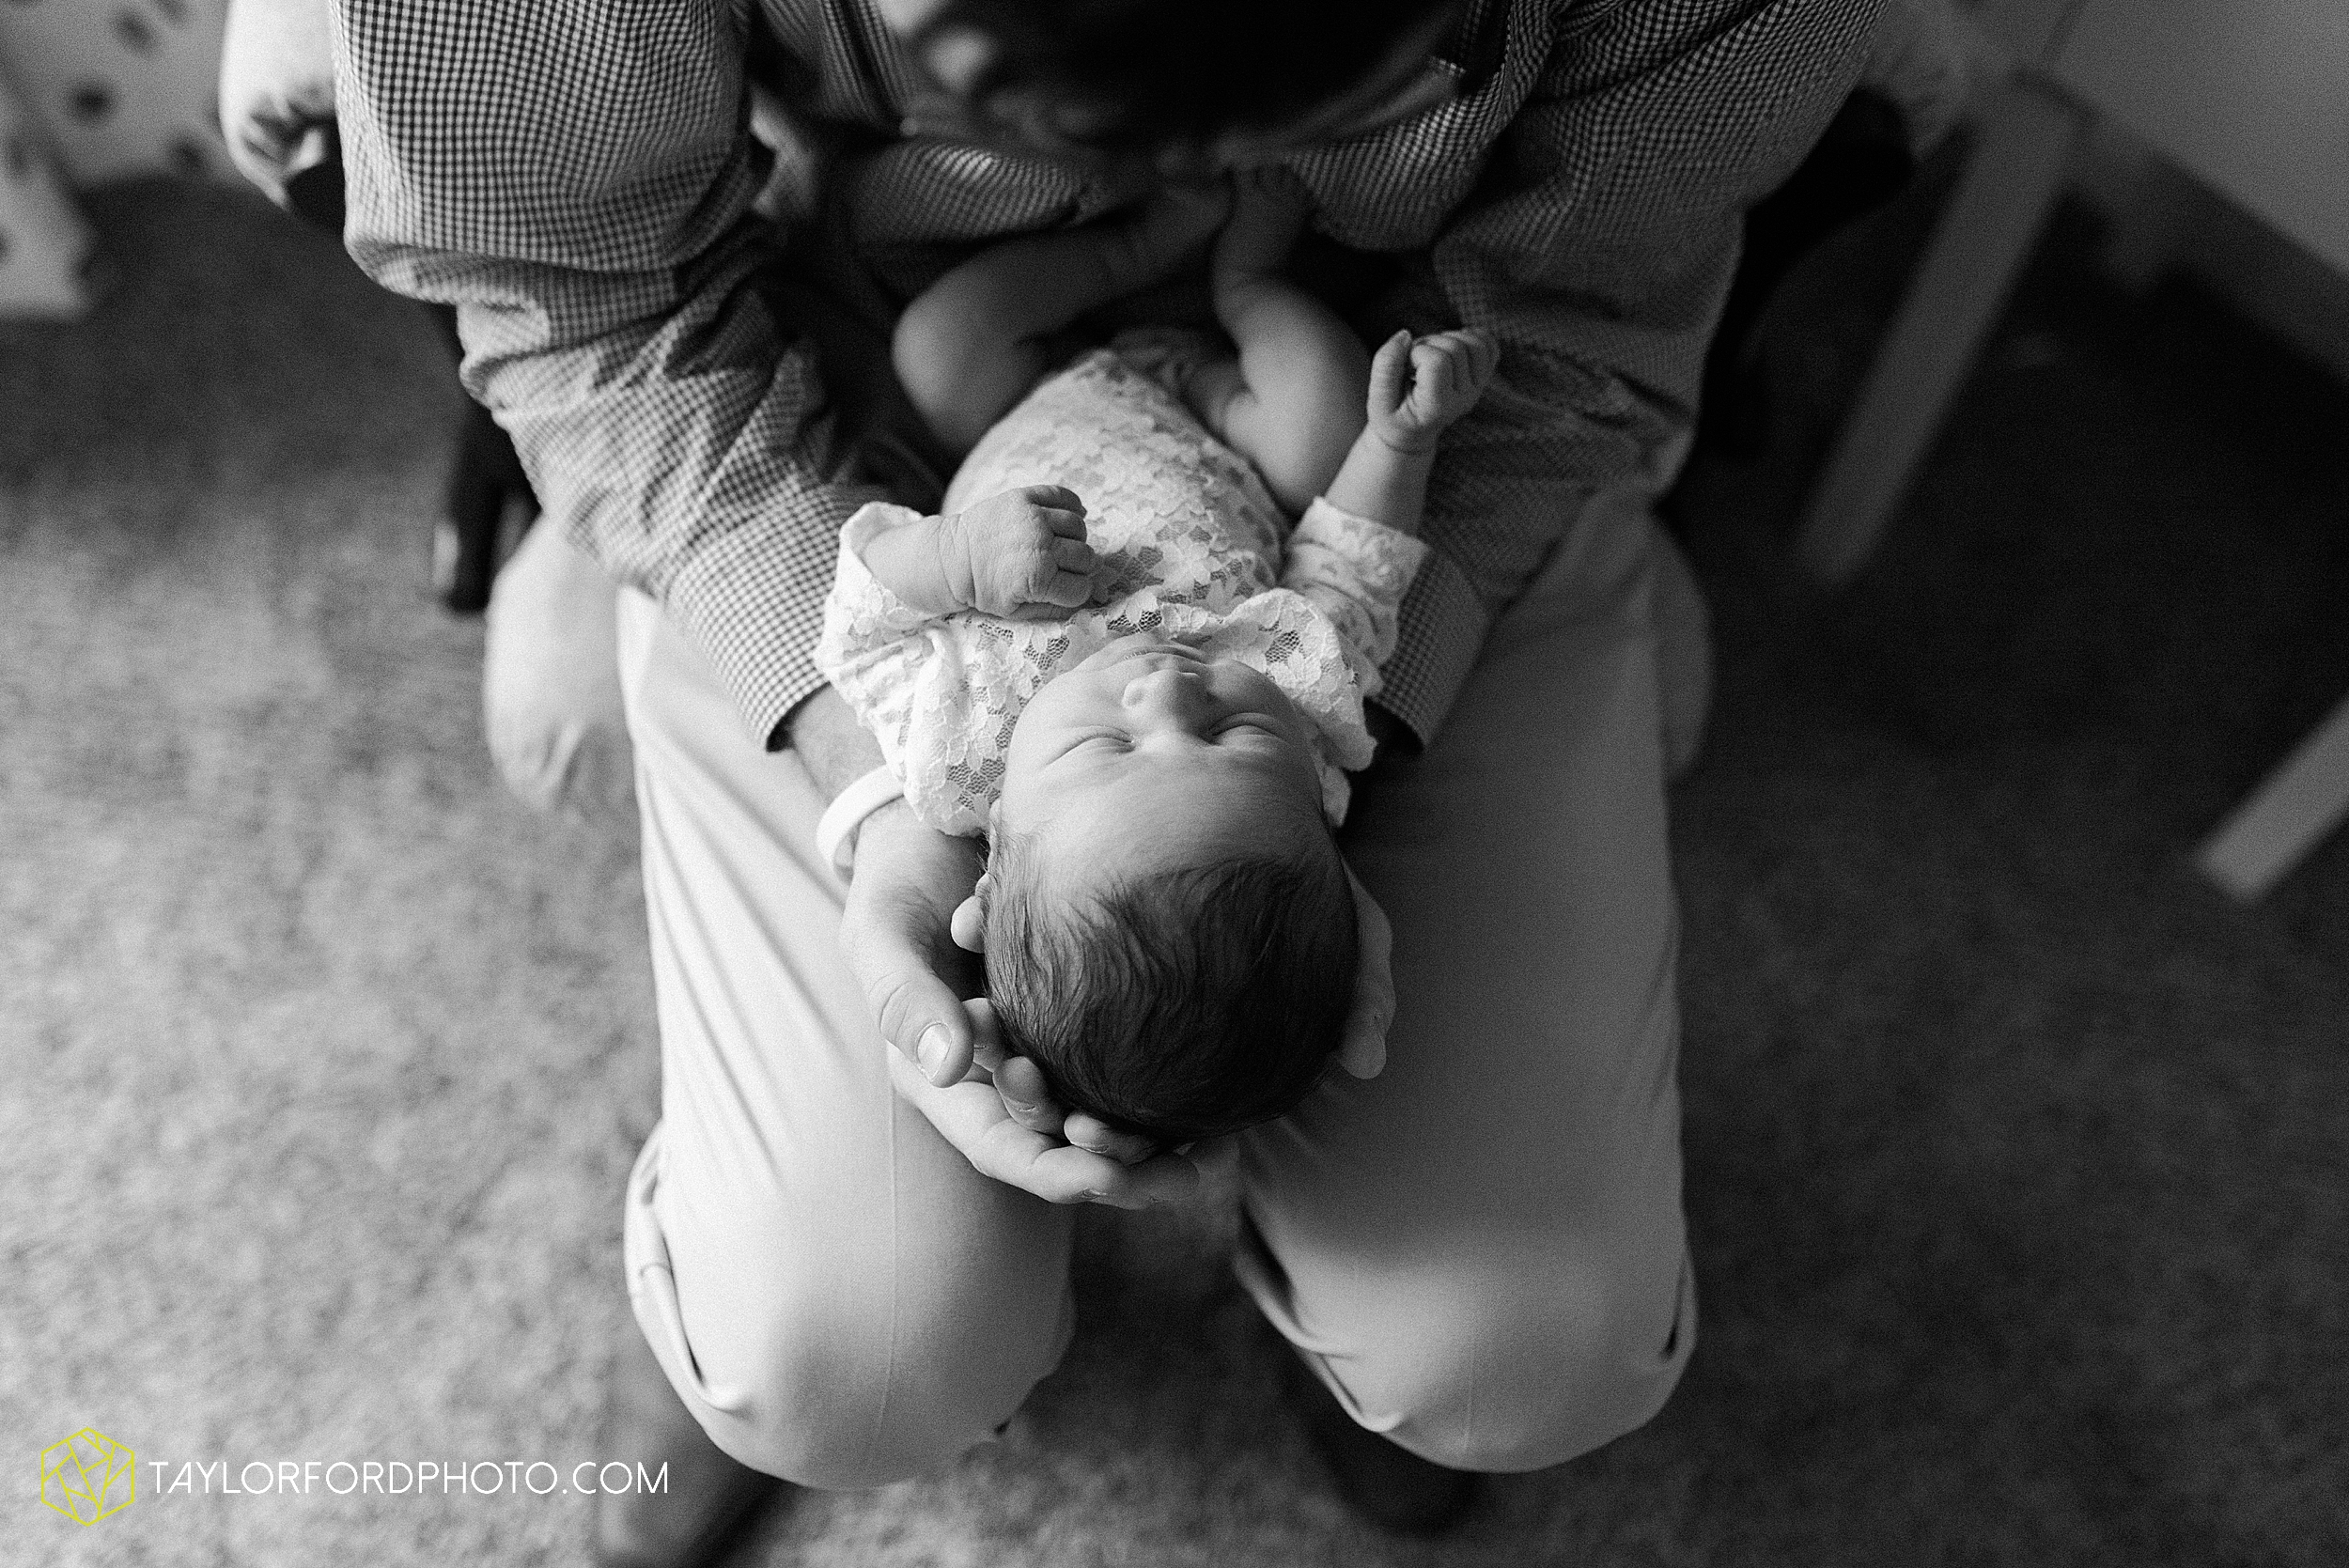 ashley-aaron-noraa-lifestyle-at-home-family-newborn-blacklick-columbus-ohio-photography-taylor-ford-hirschy-photographer_2330.jpg